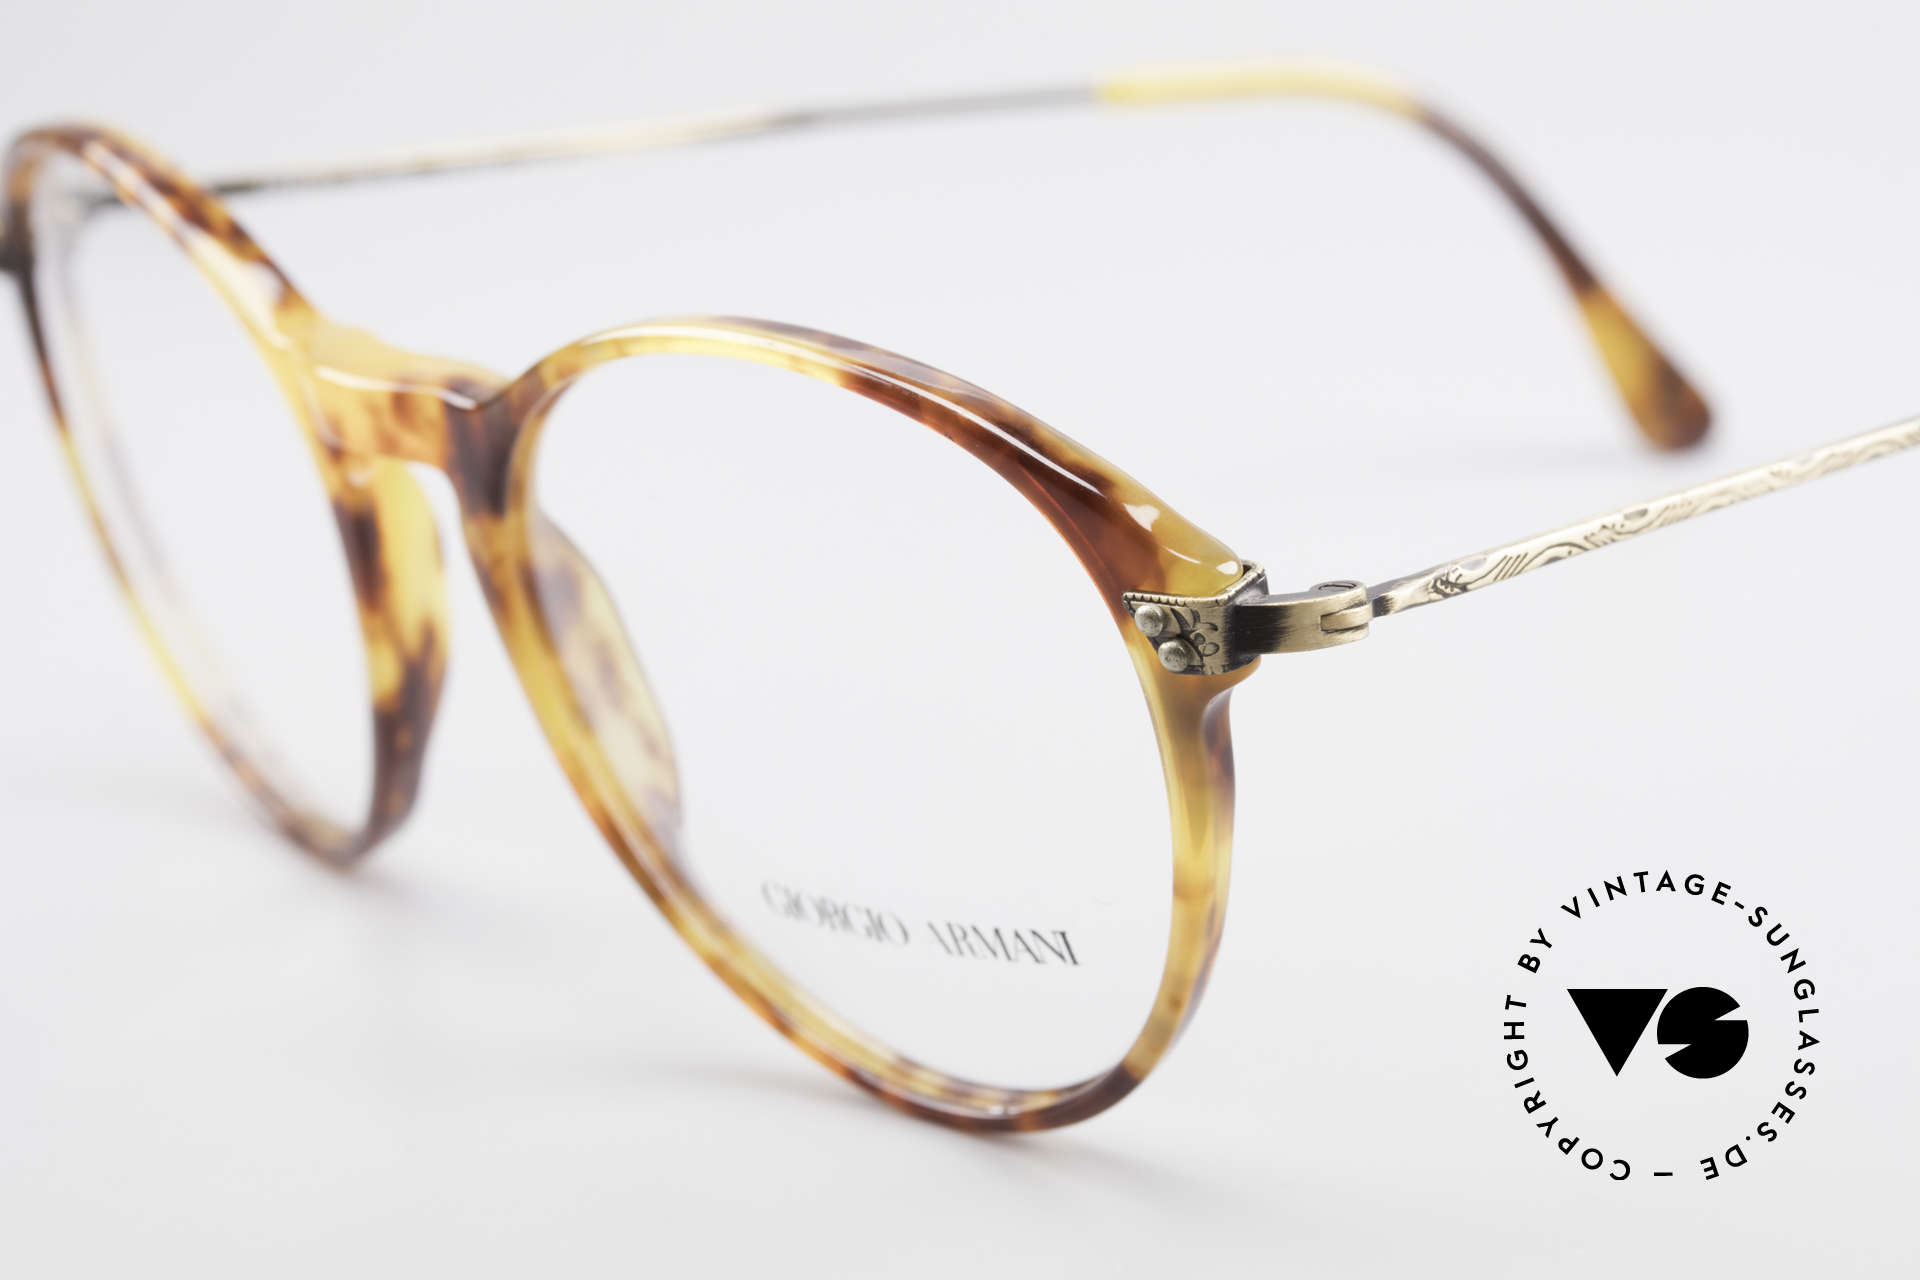 Giorgio Armani 329 90's Panto Glasses Medium, amber / tortoise front & costly formed brass temples, Made for Men